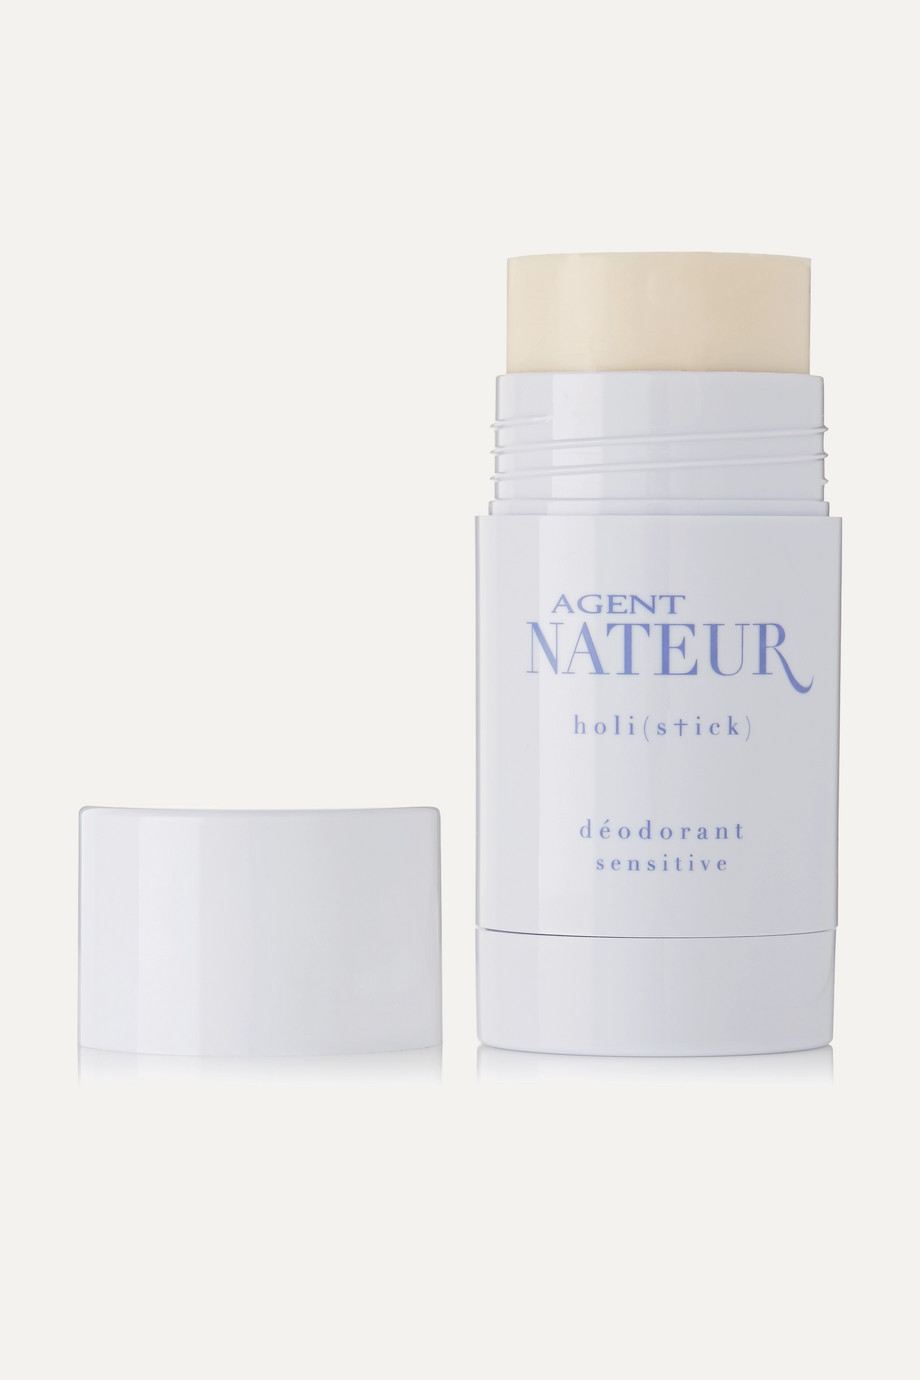 Agent Nateur Vegan Sensitive holi(stick) Déodorant, 50ml